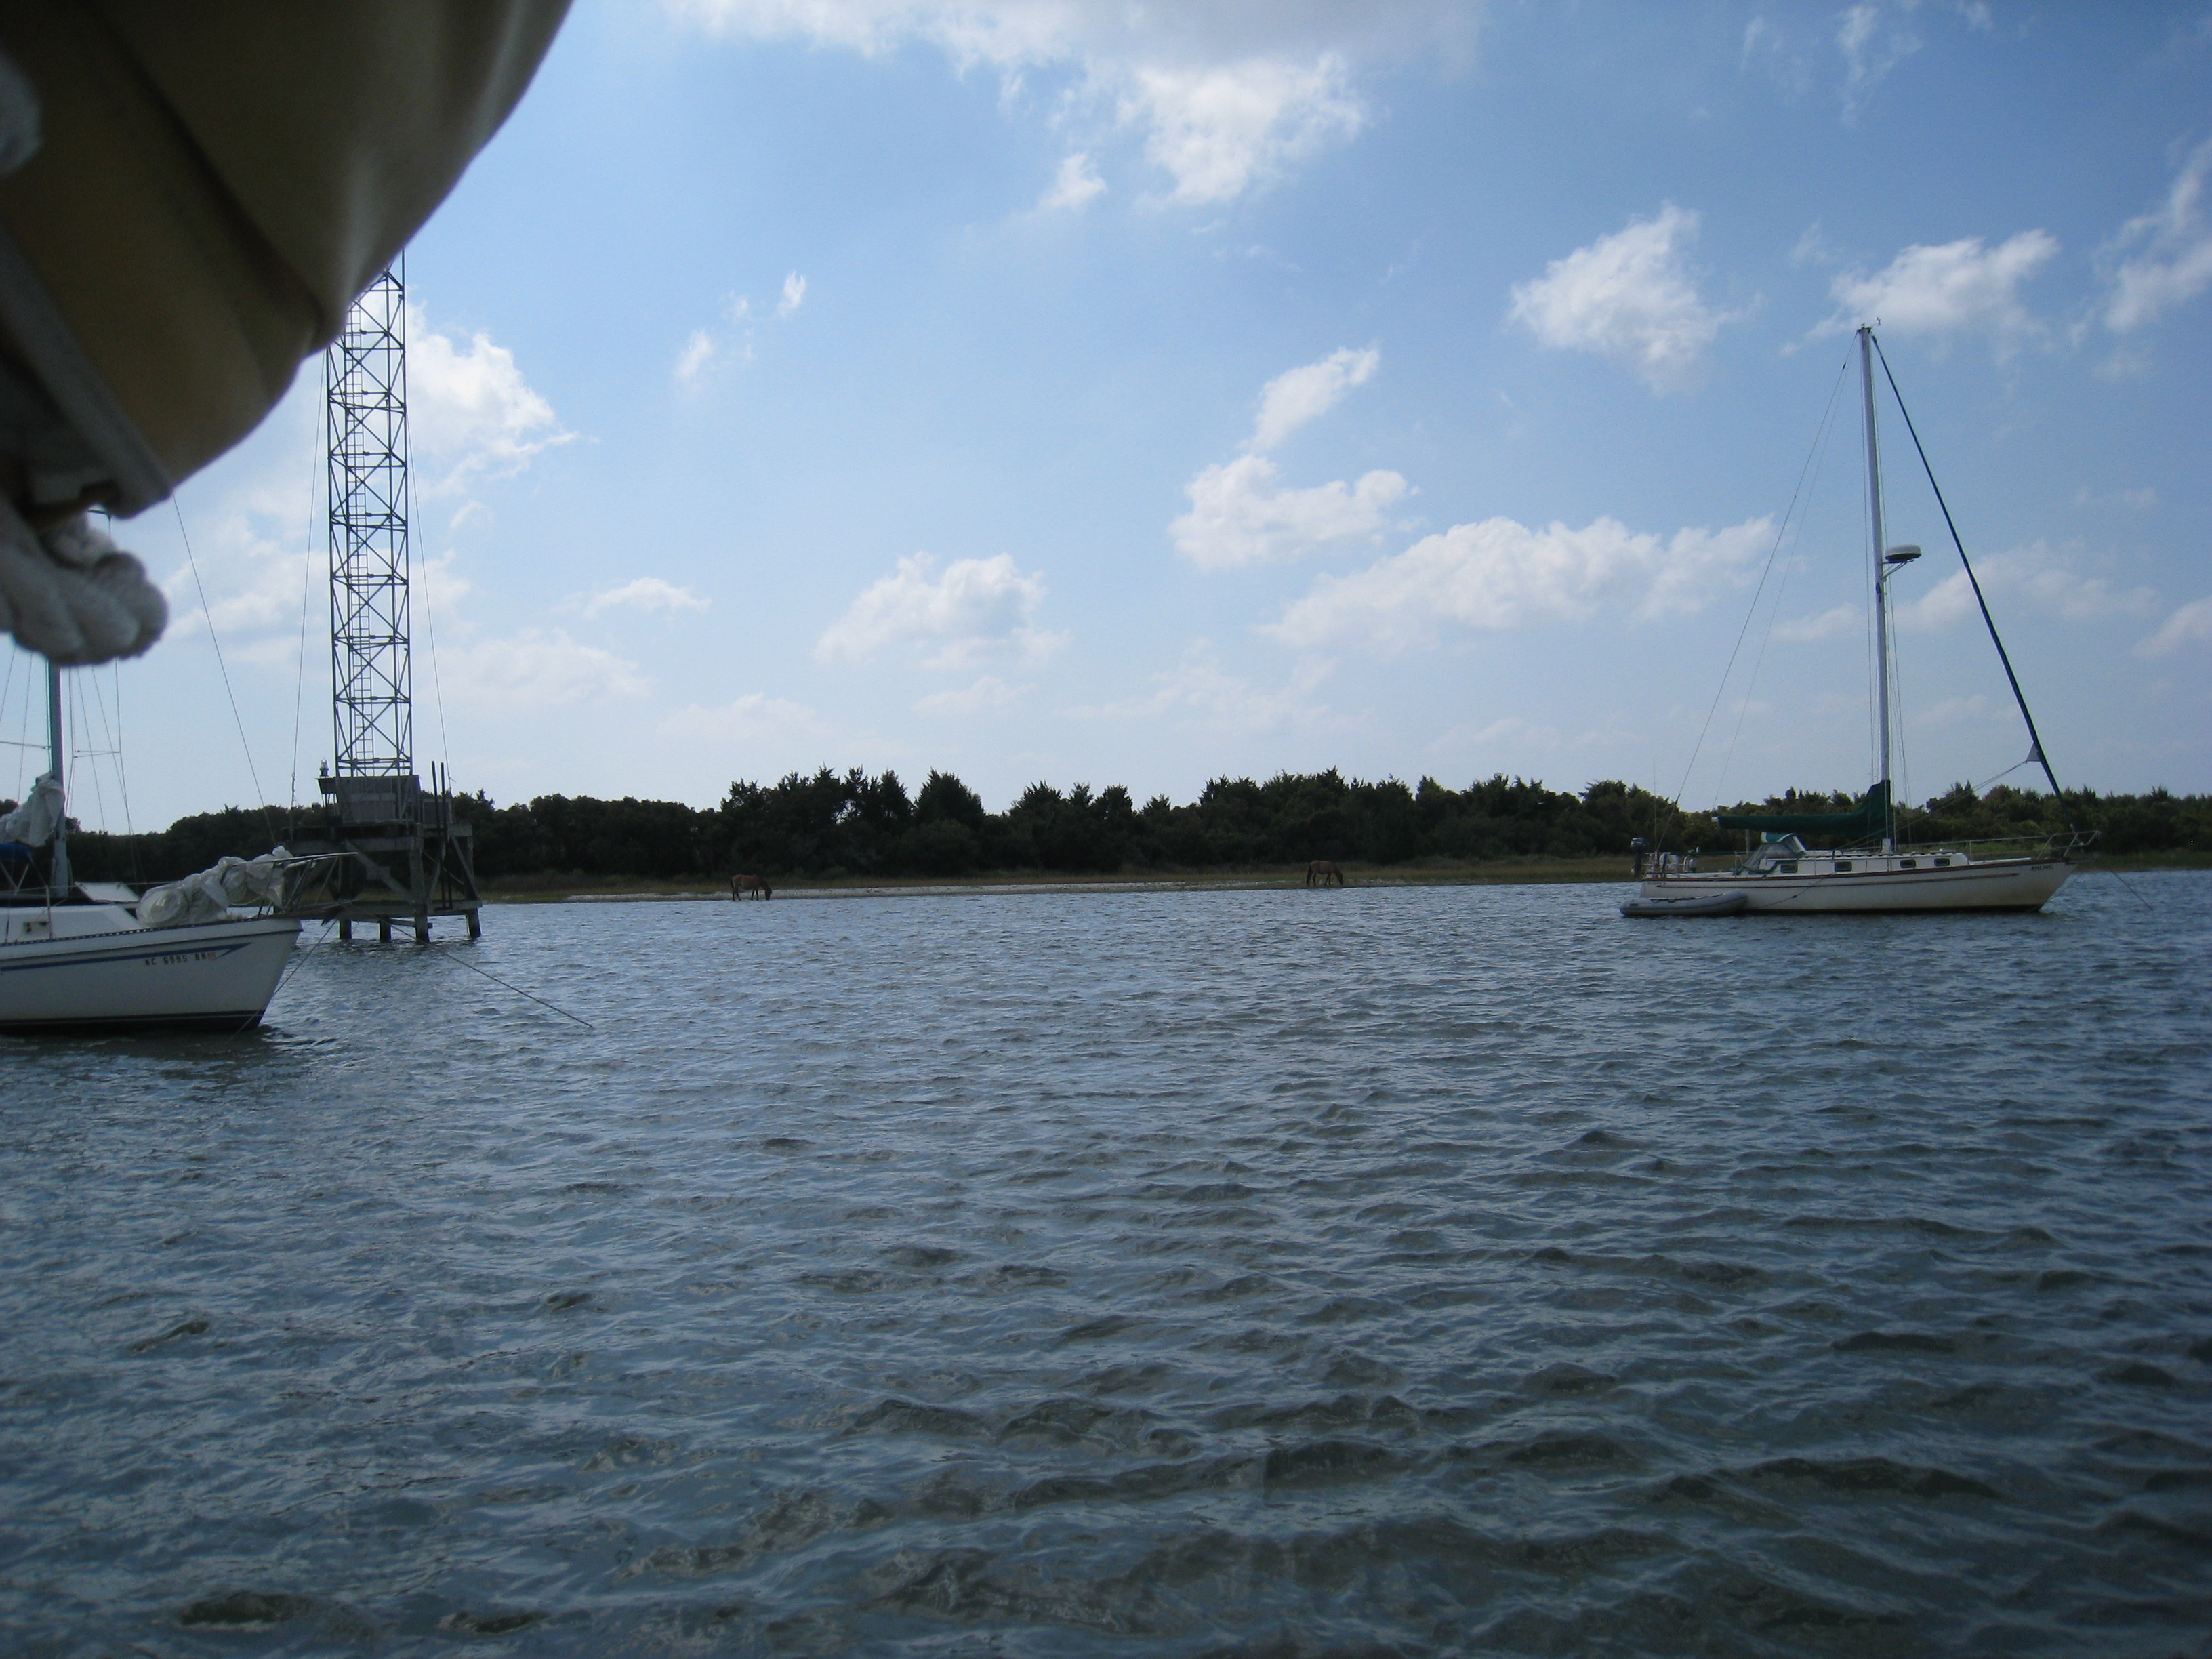 Sailing down the intracoastal waterway for 5 days adventure from wild horses on an island across from beaufort nc publicscrutiny Images